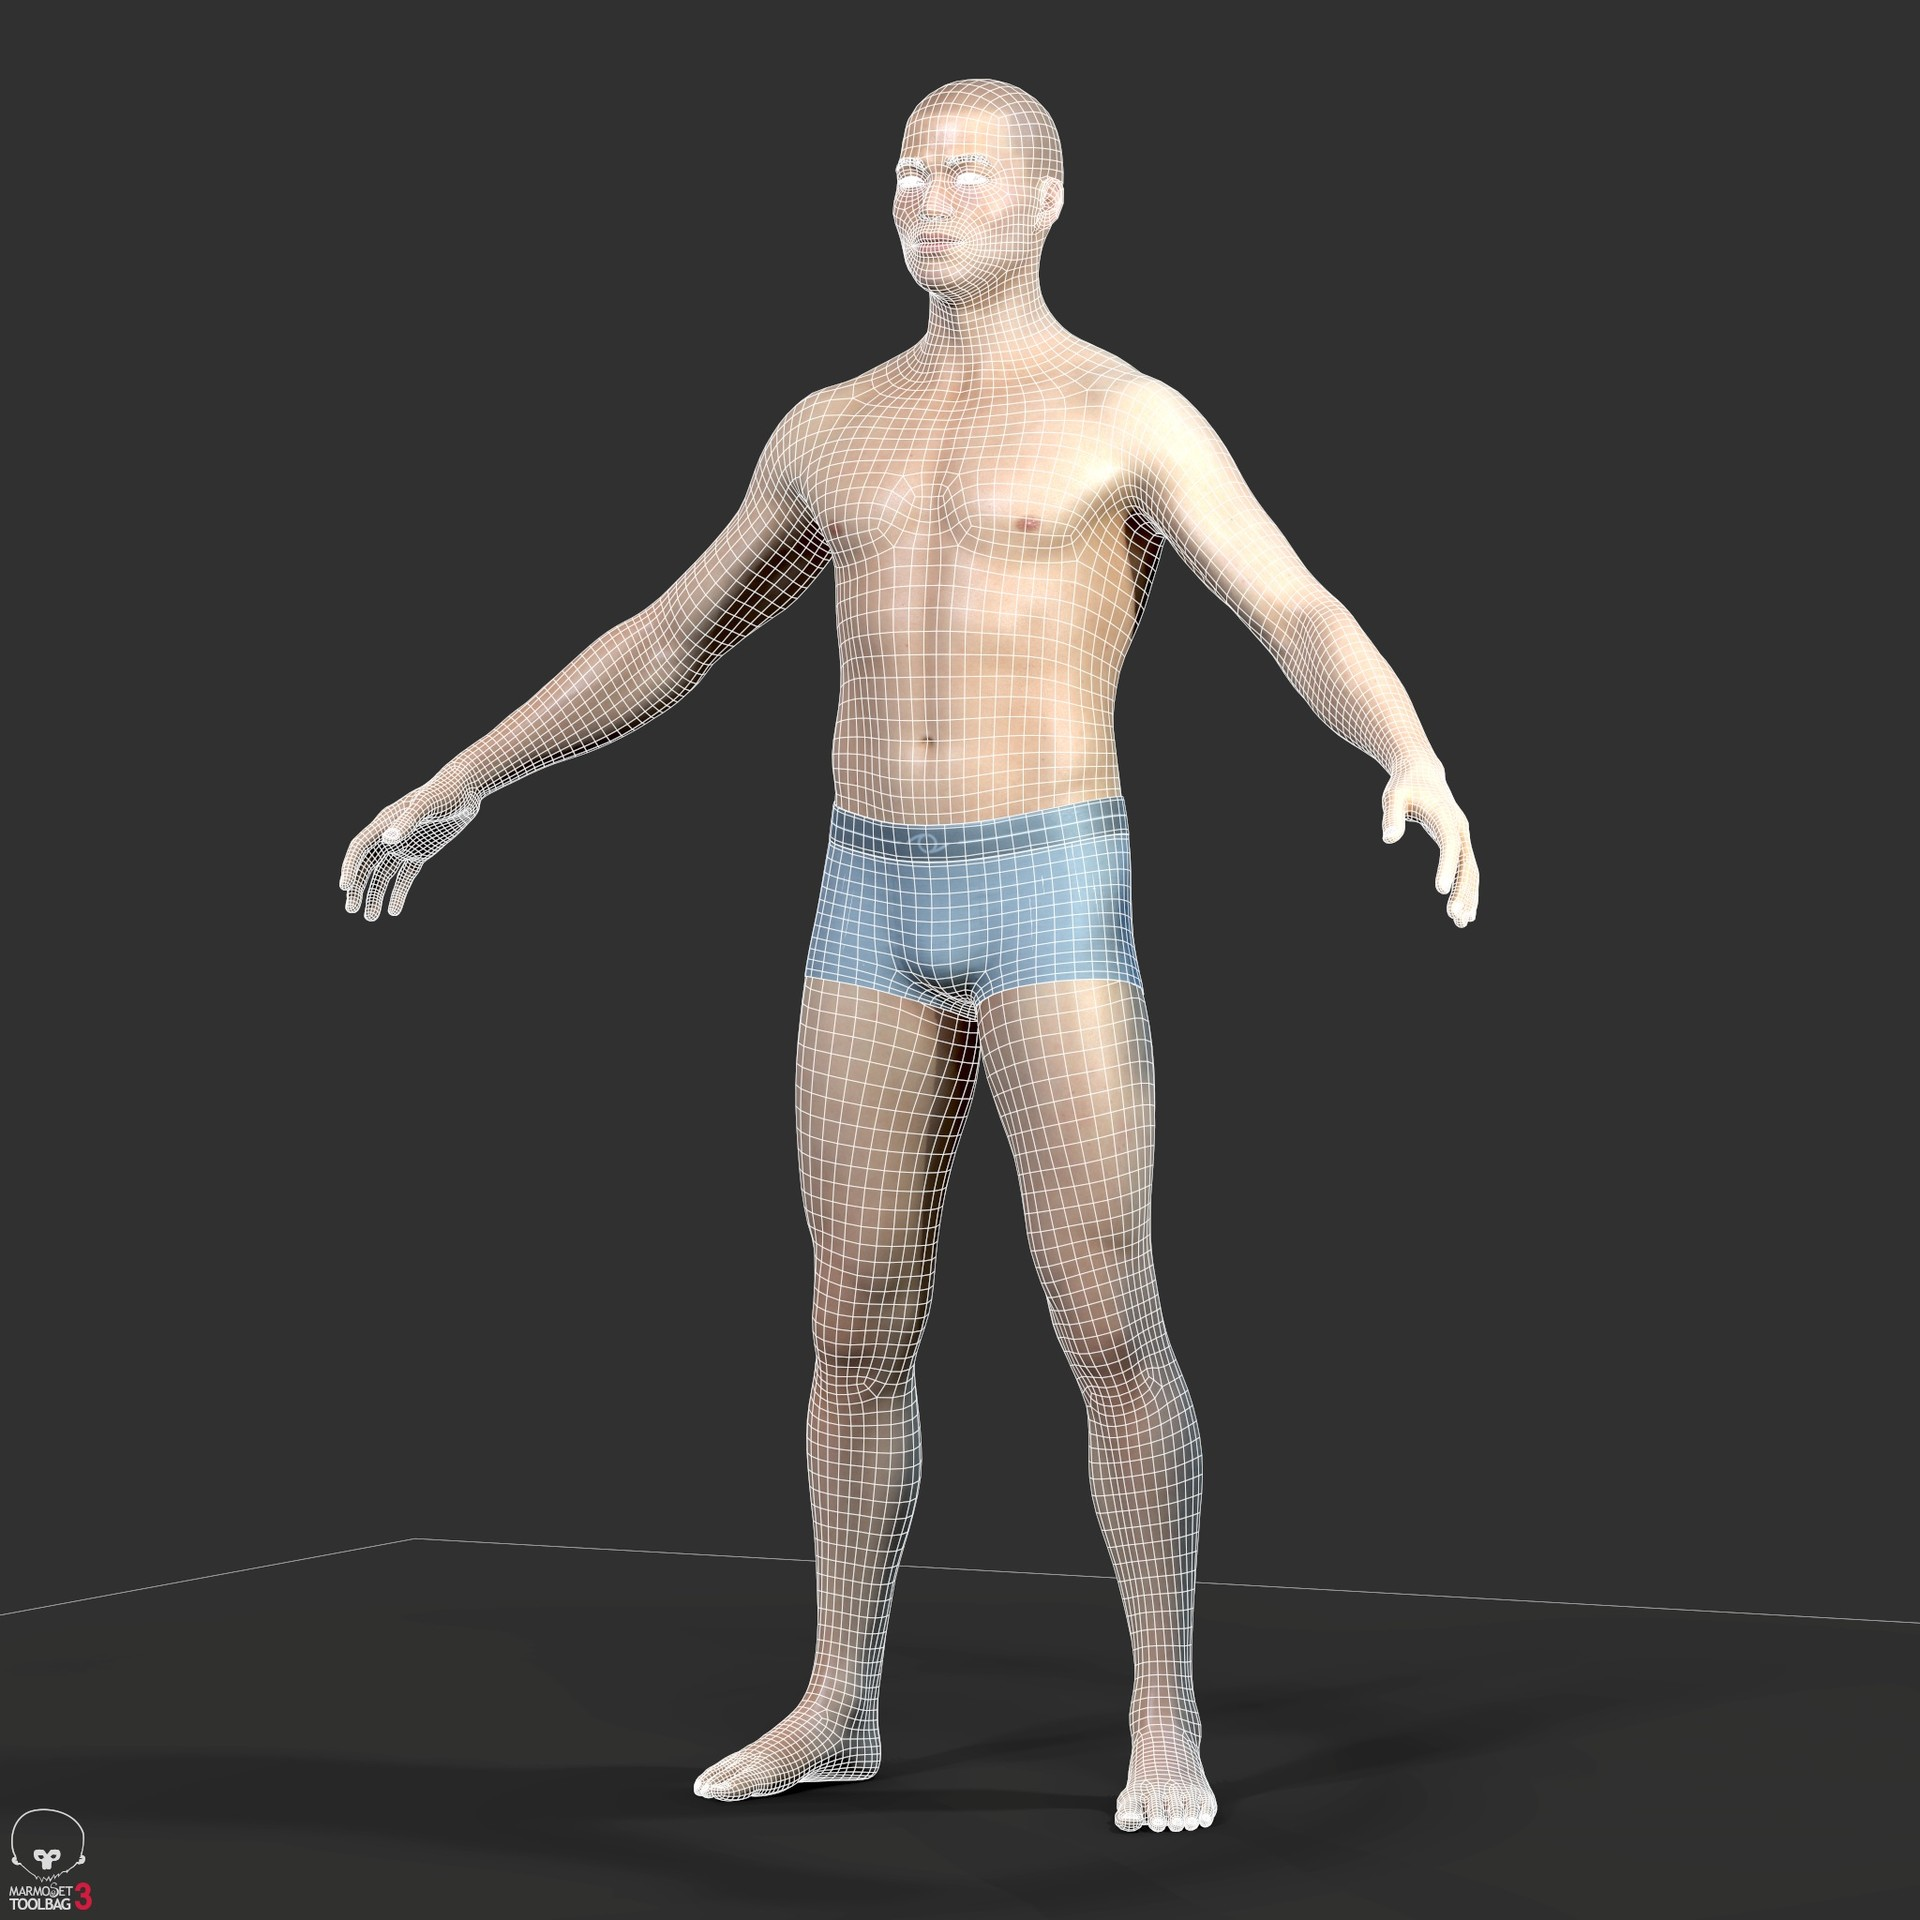 Alex lashko averageasianmalebody by alexlashko wireframe 04